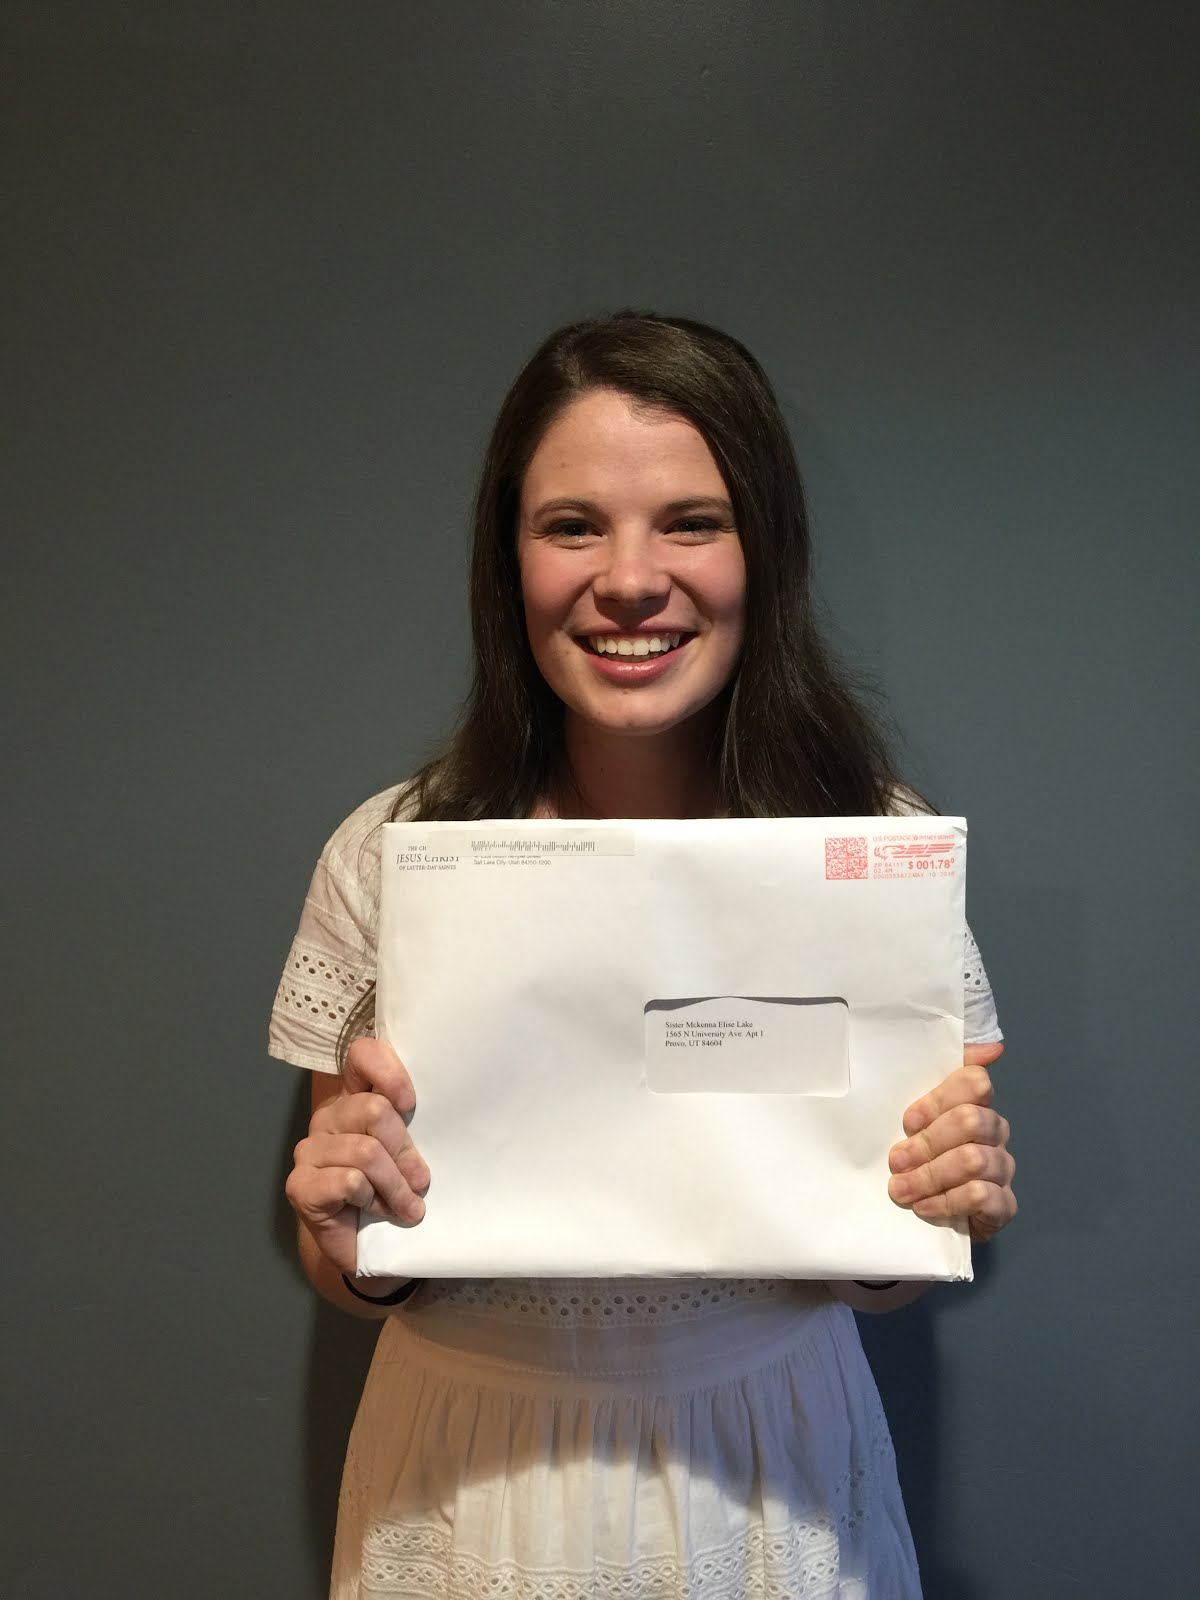 OPENING HER MISSION CALL